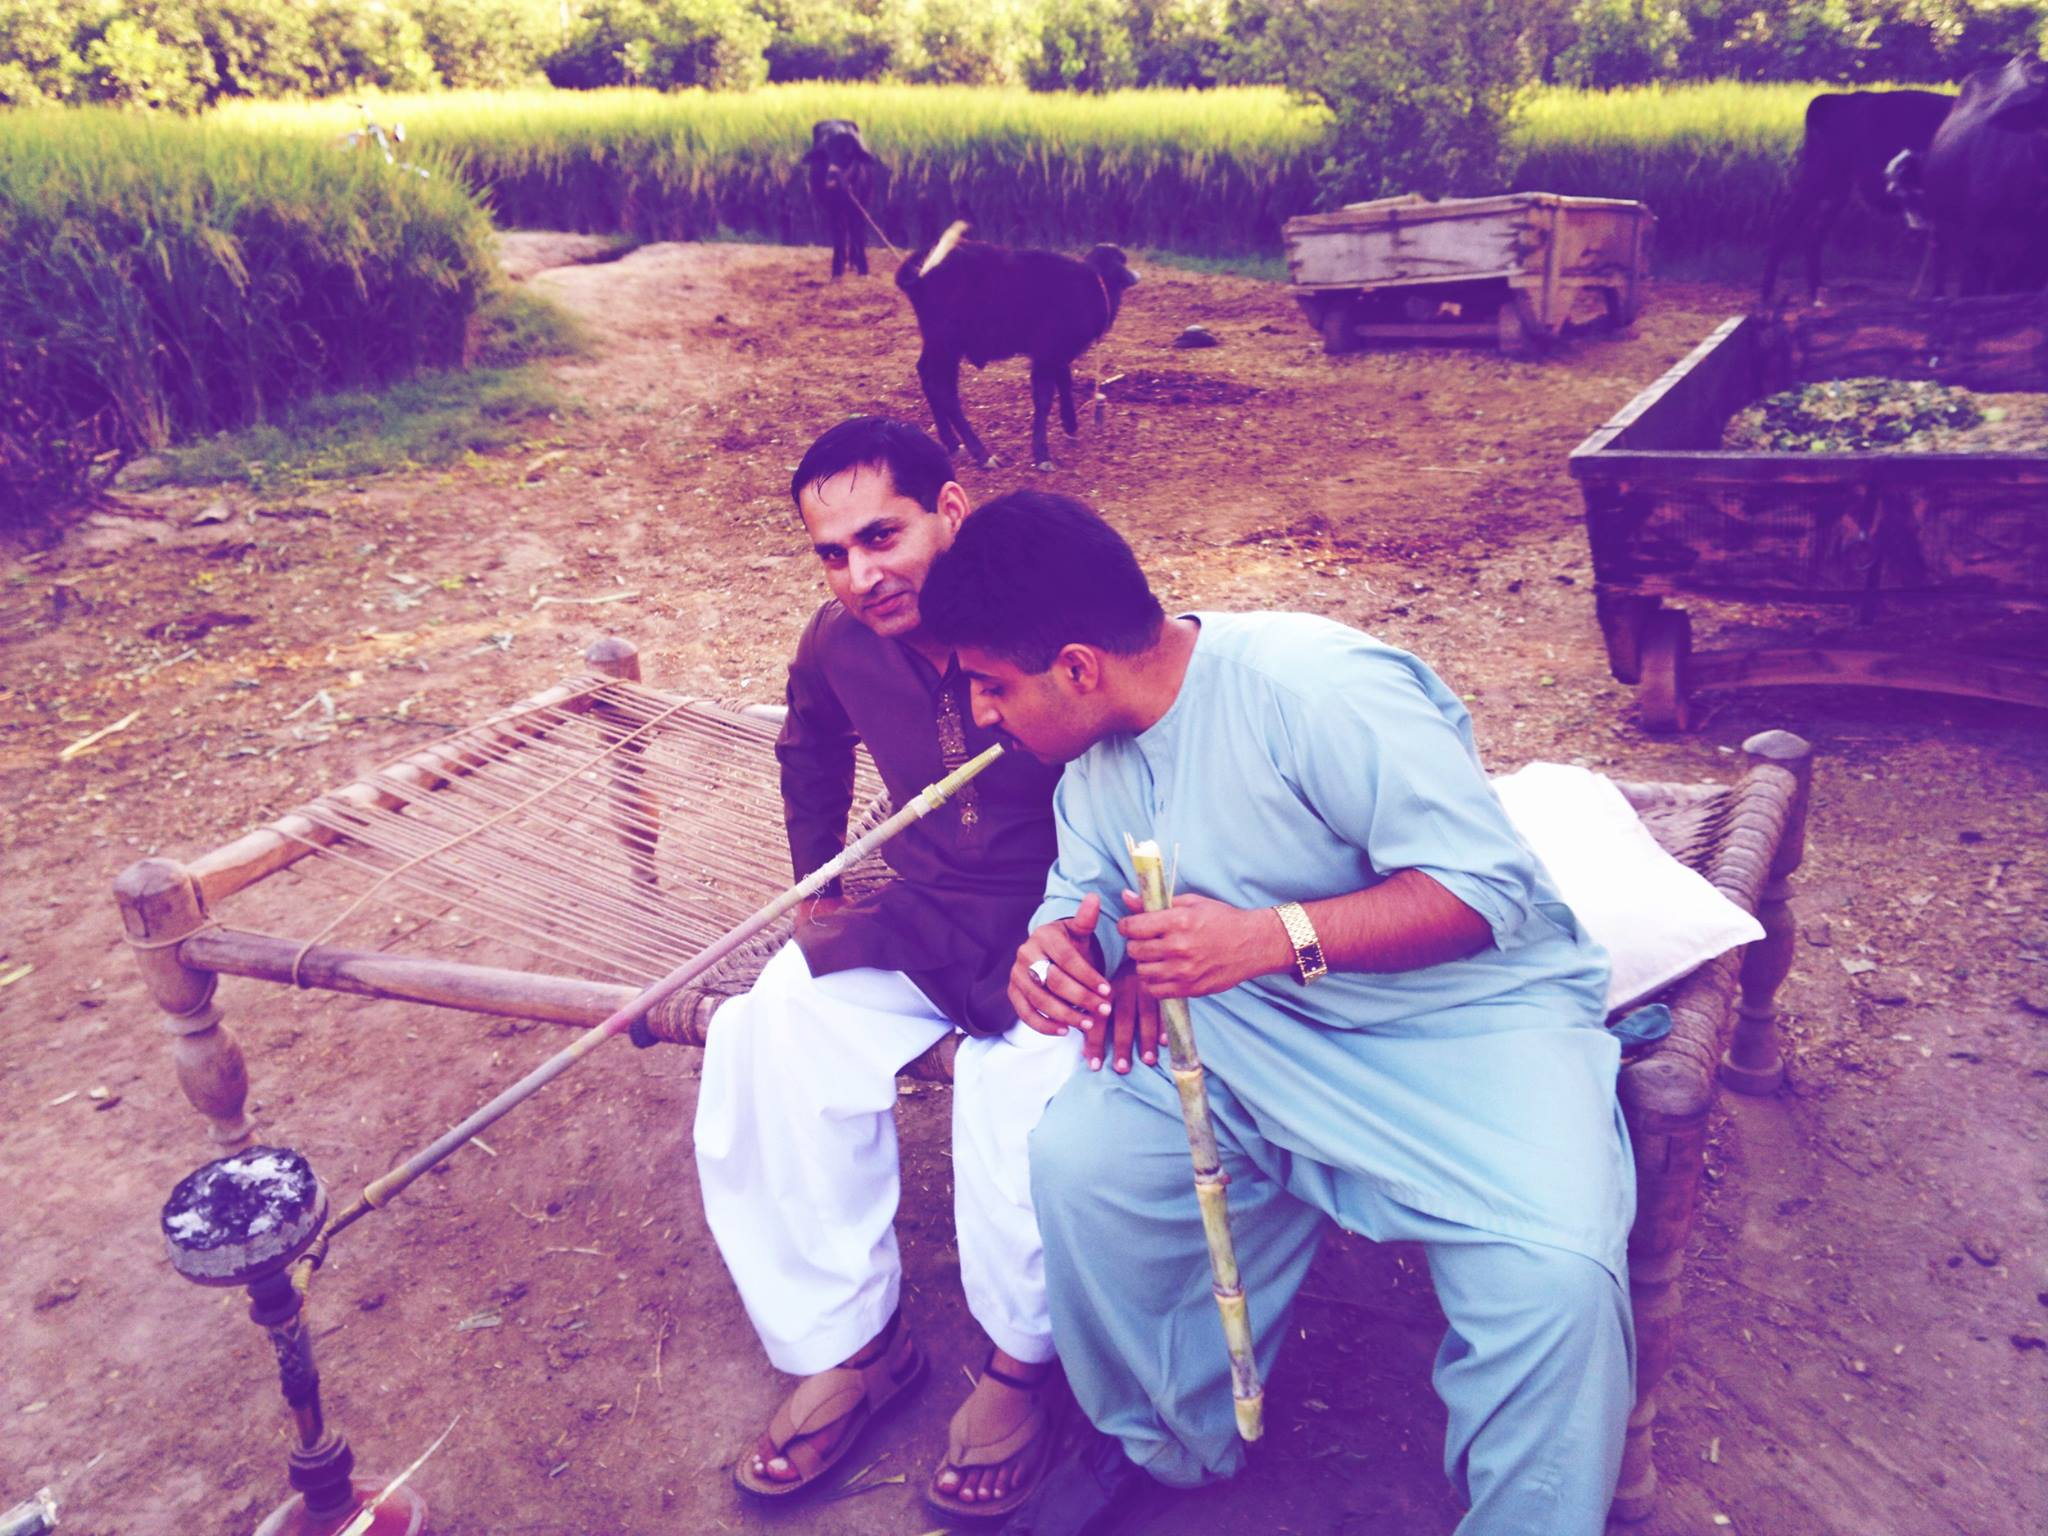 Punjabi rapper Kasim Raja (right) smoking sheehsa in his ancestral village